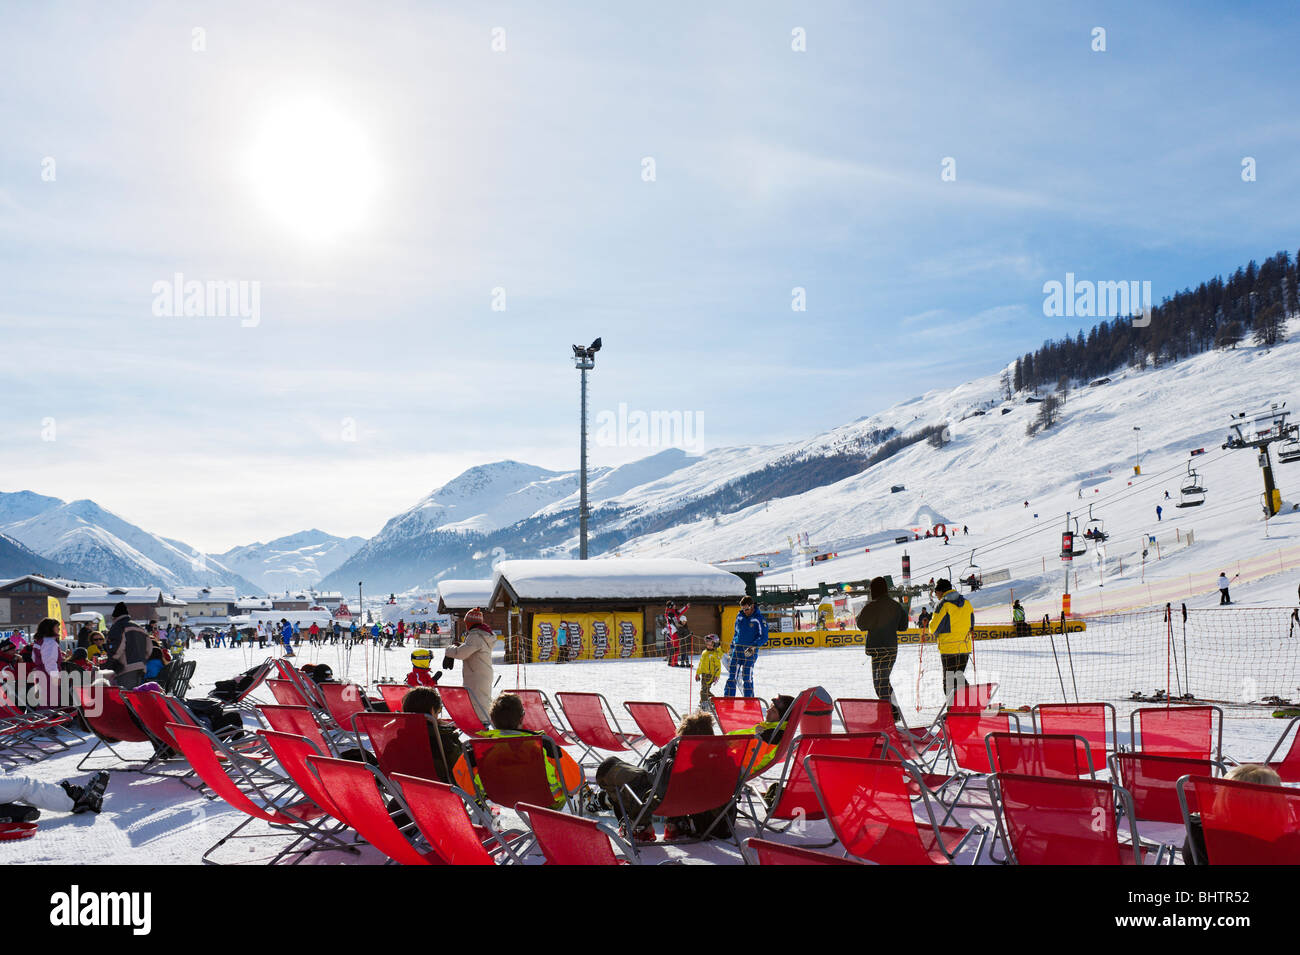 Deckchairs Deck Chairs Deck Chairs Stock Photos